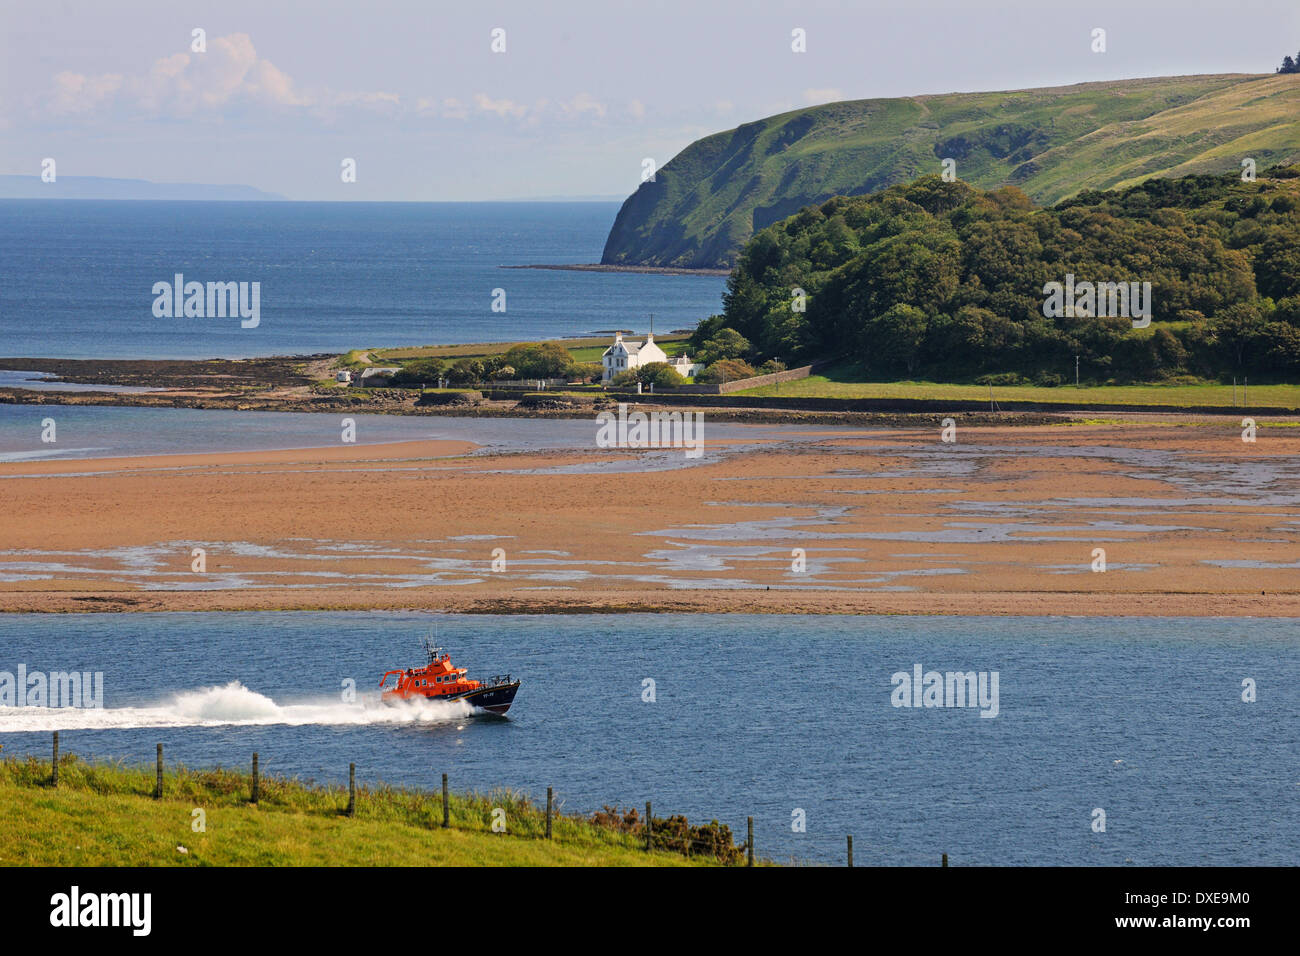 Campbeltown lifeboat at speed passing Davaar island, Campbeltown Loch, Argyll - Stock Image